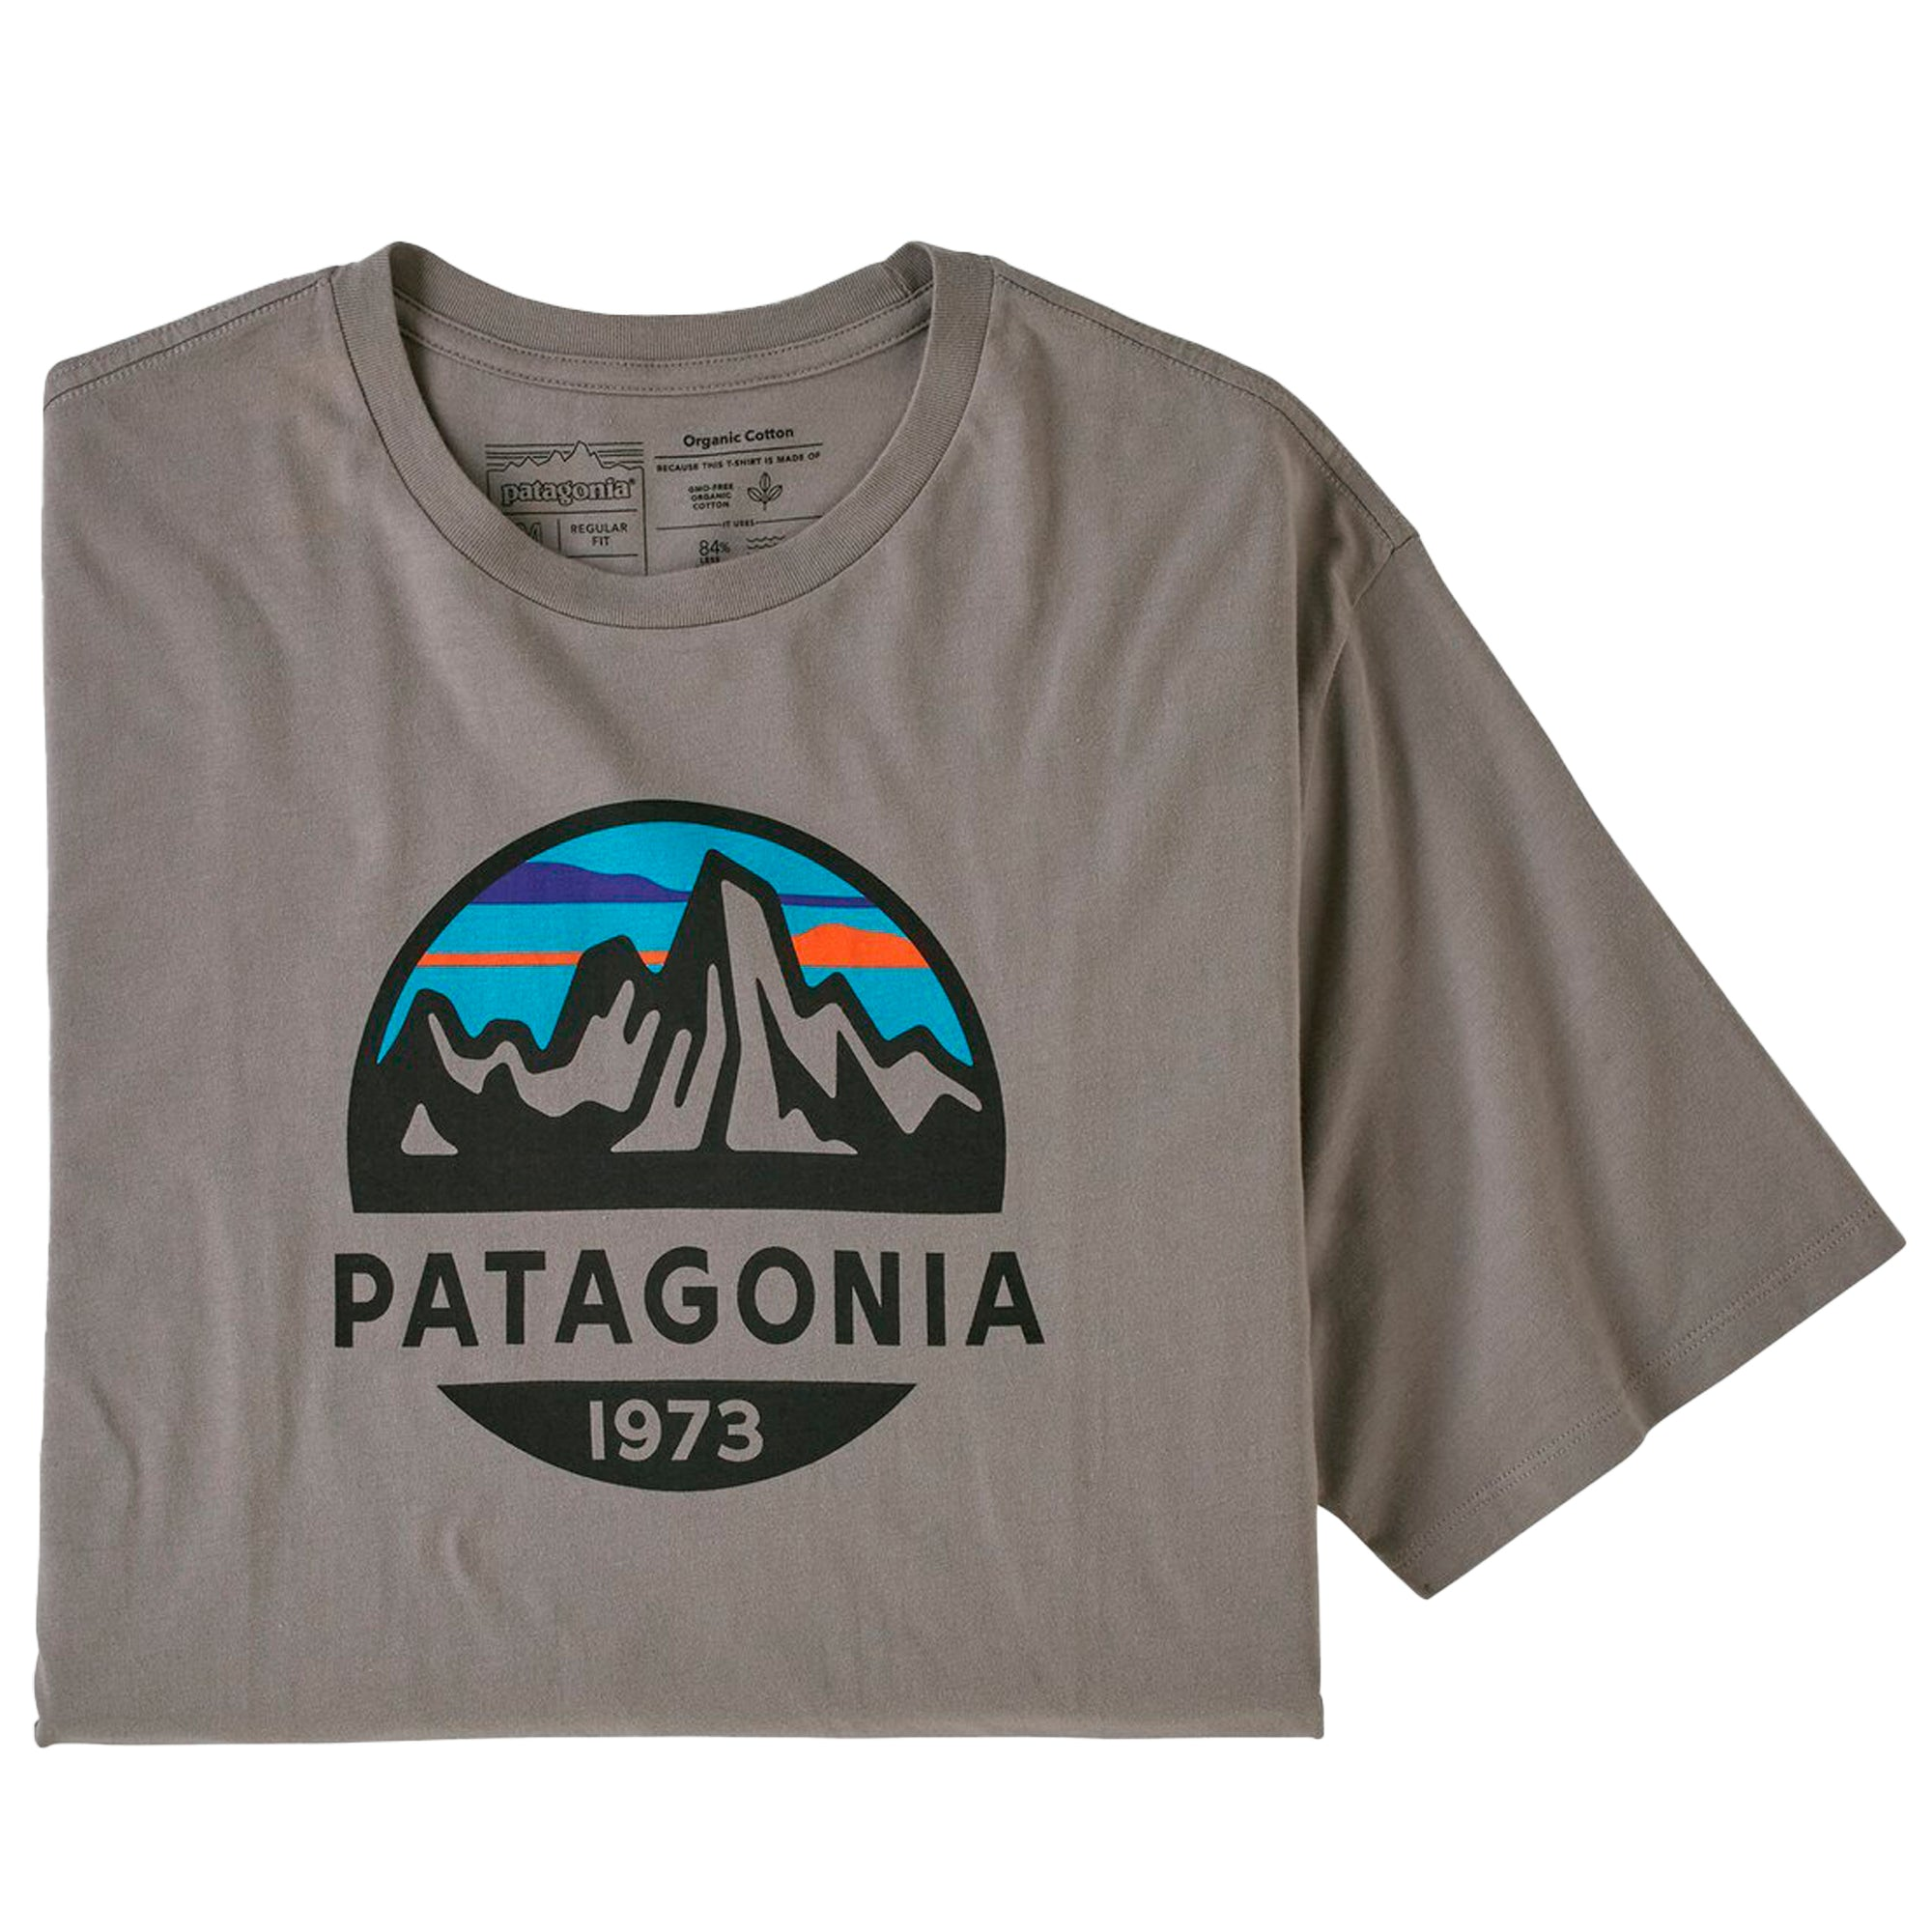 Patagonia Fitz Roy Scope Organic T-Shirt: Feather Grey - The Union Project